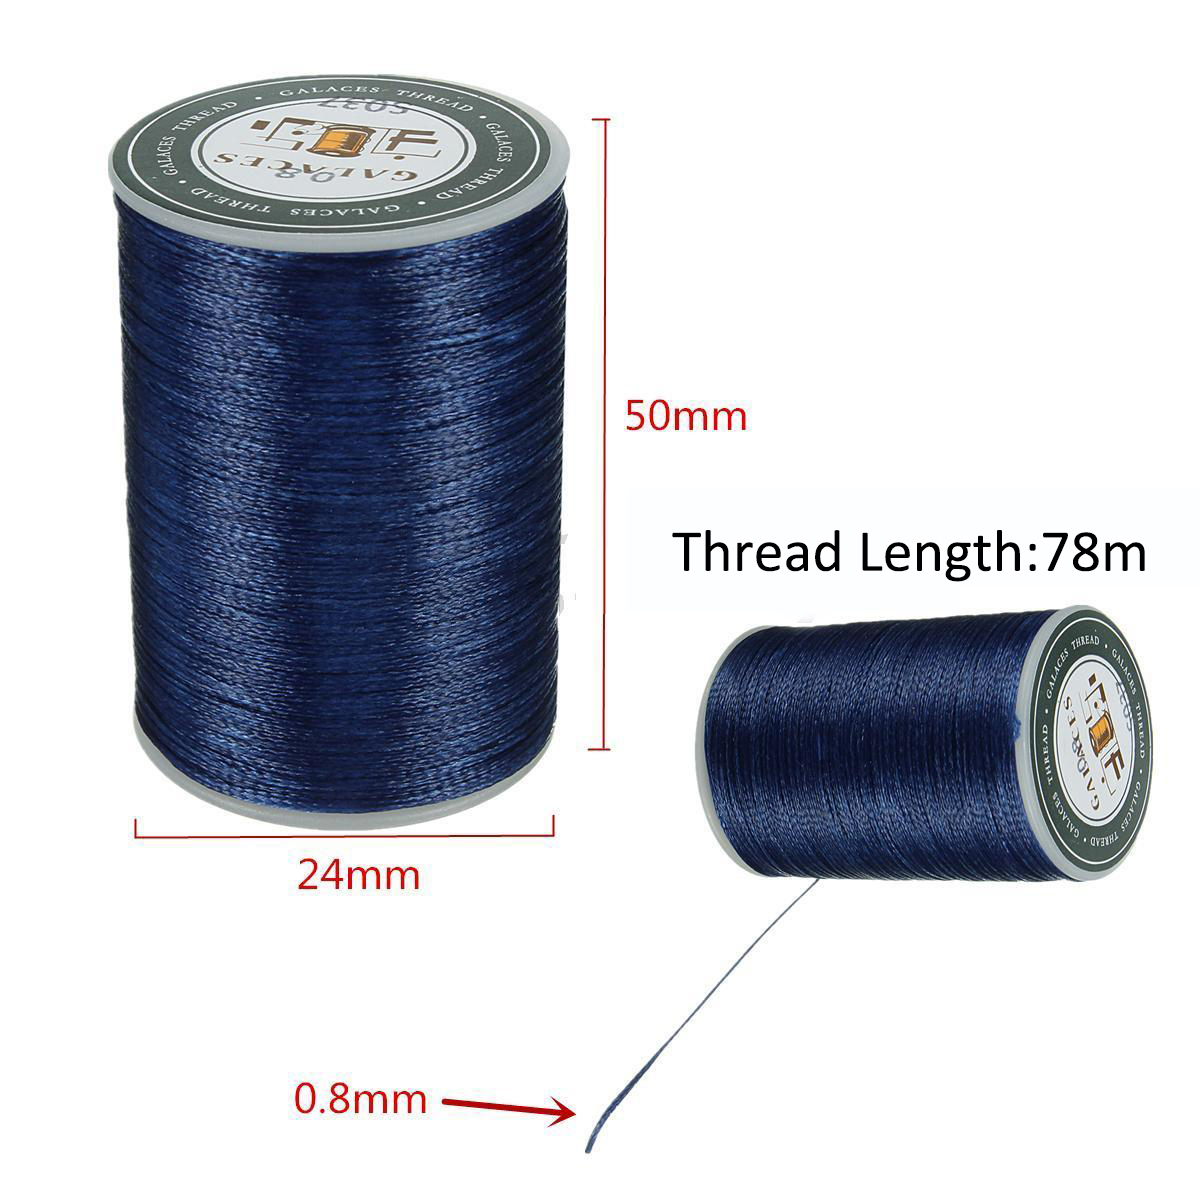 1pc 0.8mm Waxed Thread Repair Cord String Sewing Leather Hand Wax Stitching DIY Wax Thread For Case Arts Crafts Shoes Mayitr